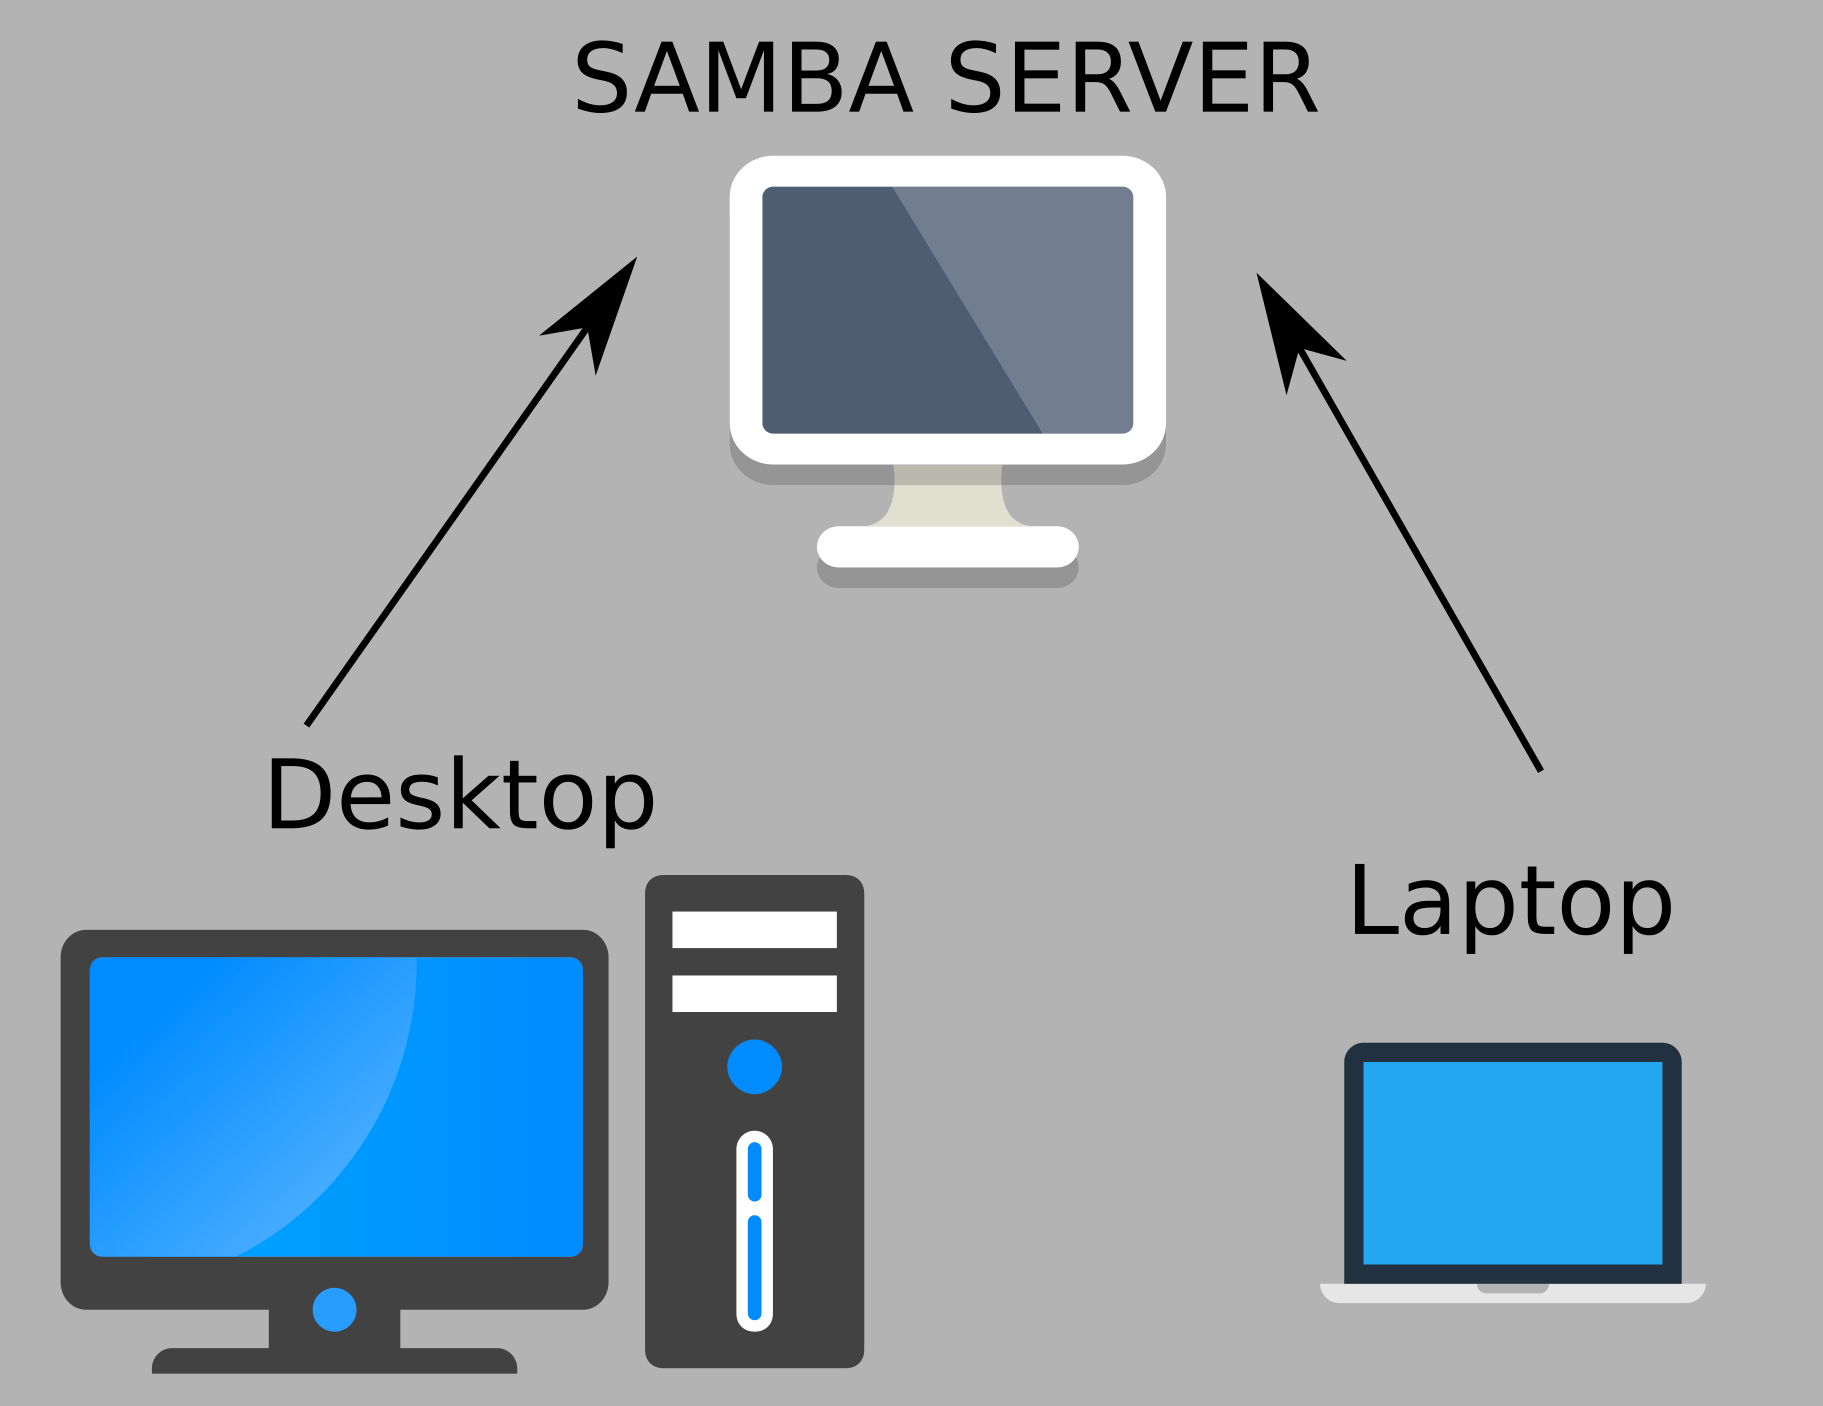 How to share files and folders with others on your home network with Samba